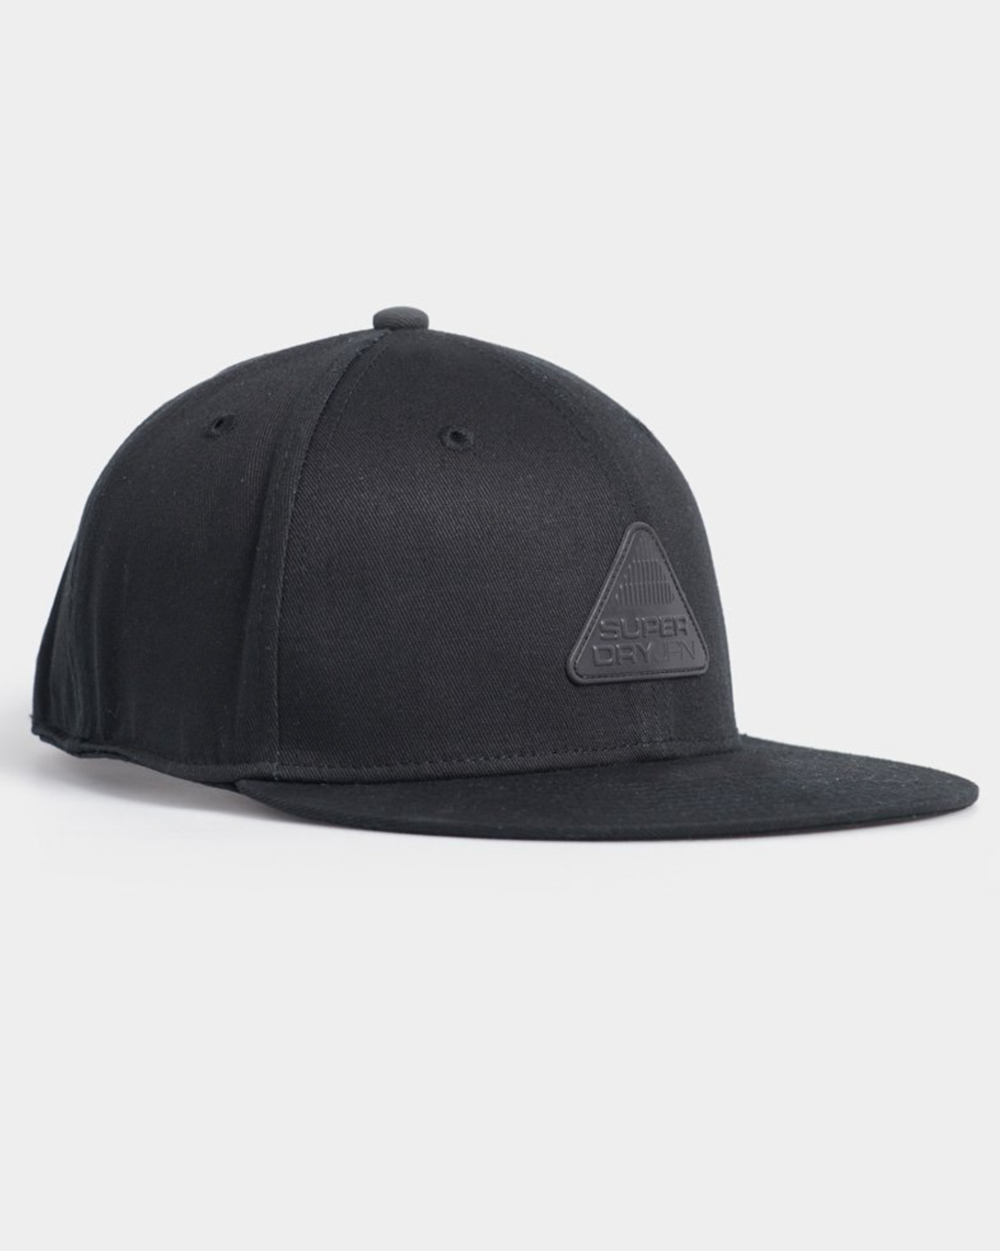 Superdry 6 Panel Twill Cap - Black